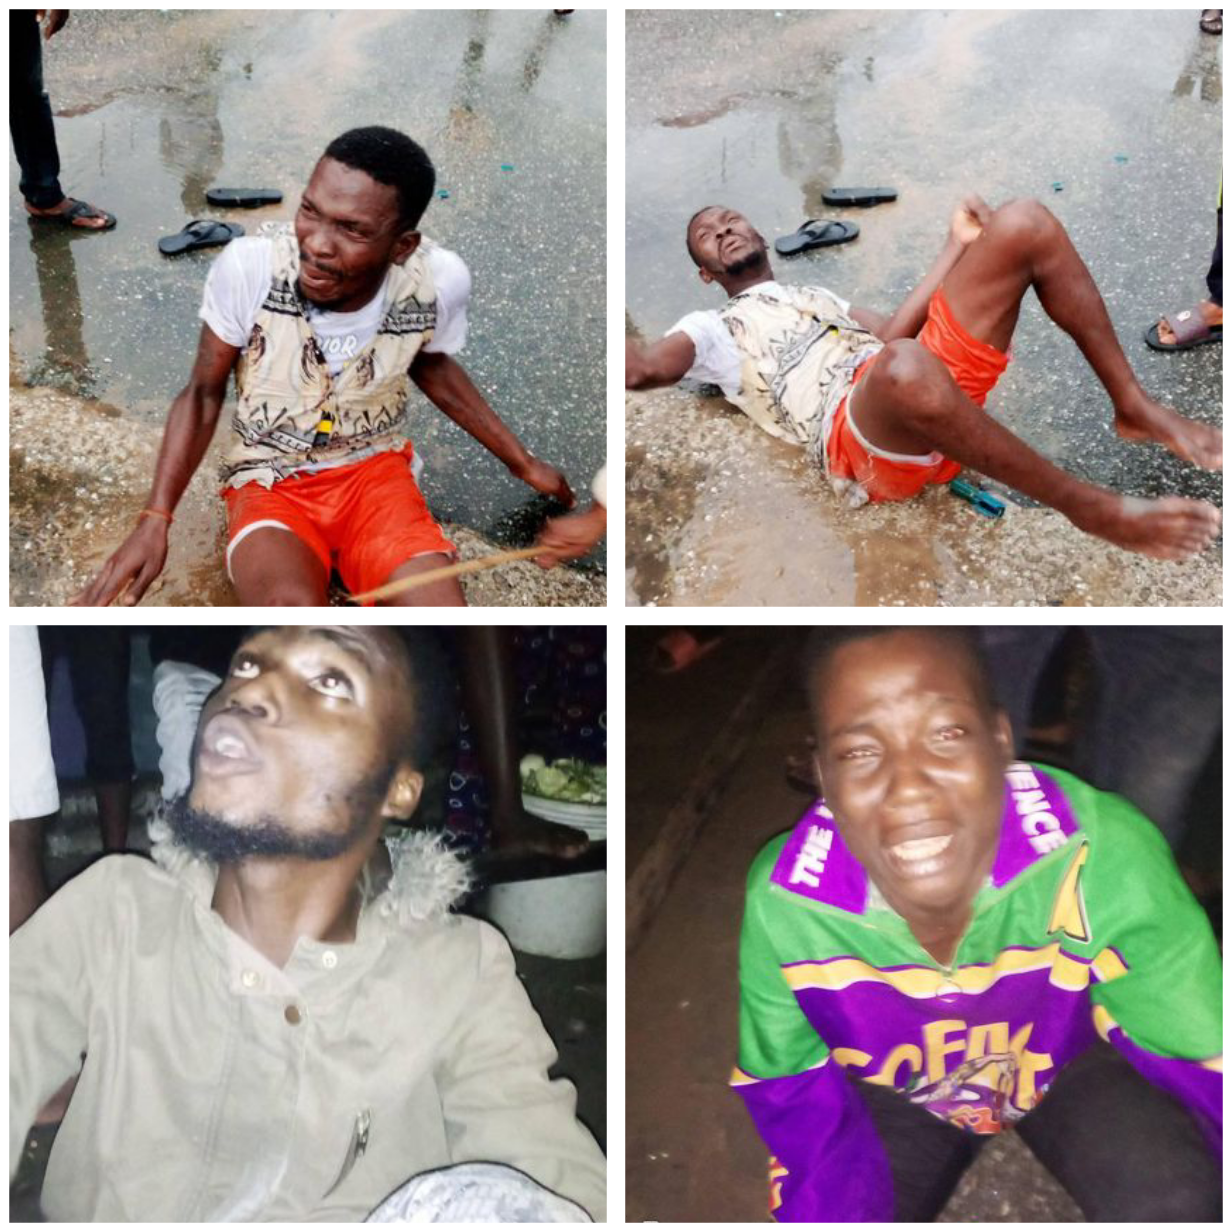 Three suspected kidnappers arrested and beaten for allegedly abducting a little boy in Bayelsa